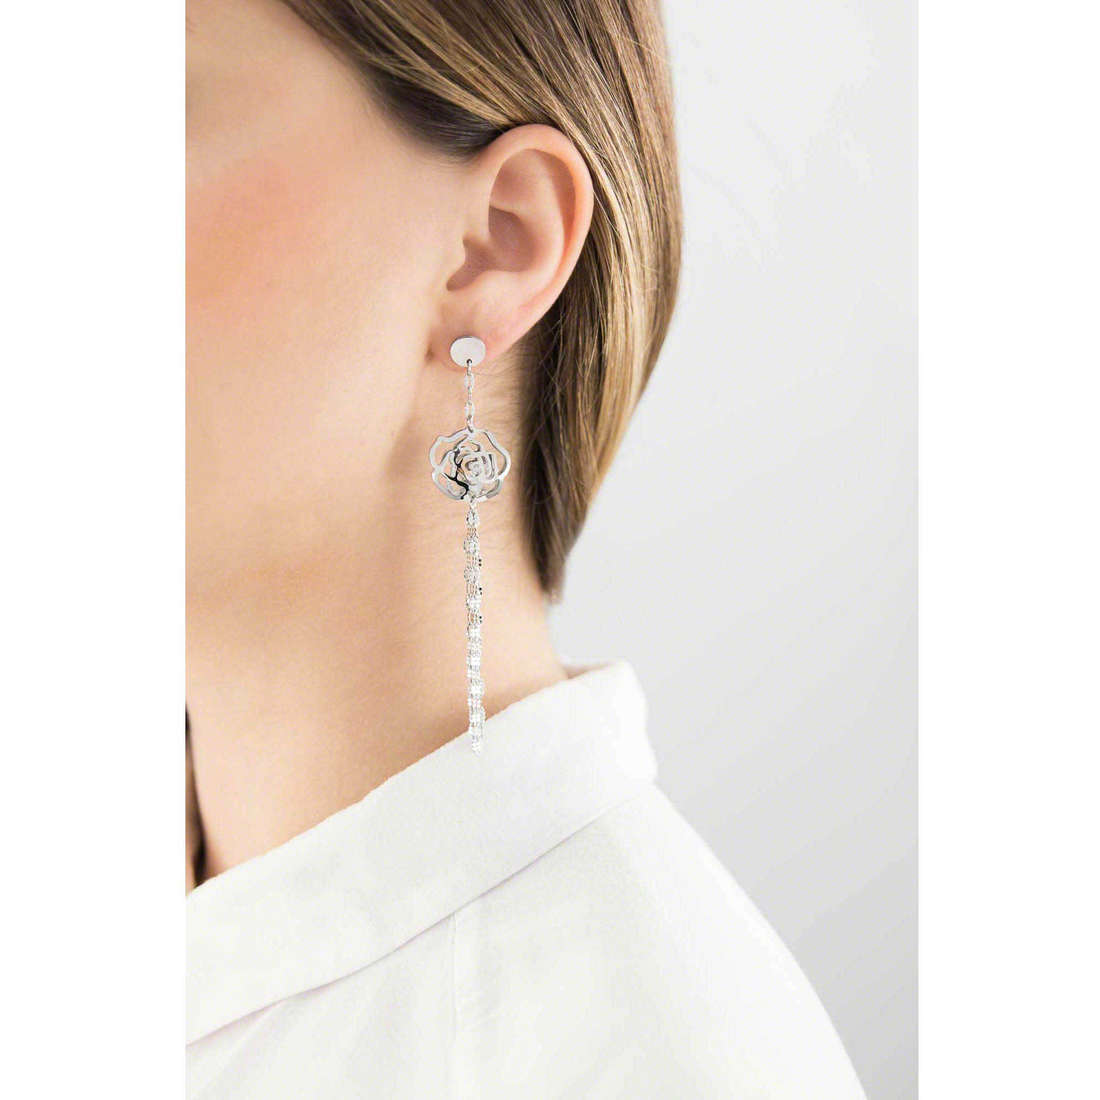 Marlù boucles d'oreille Woman Chic femme 2OR0026 indosso